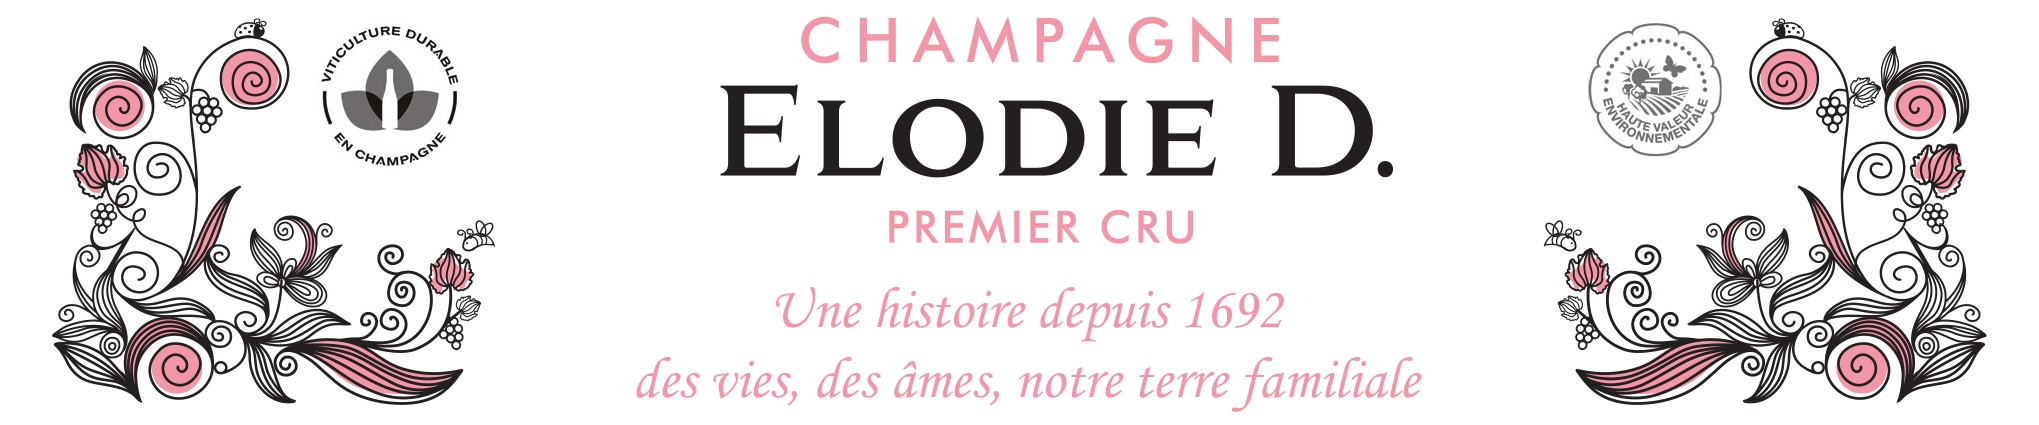 Elodie D. Champagne